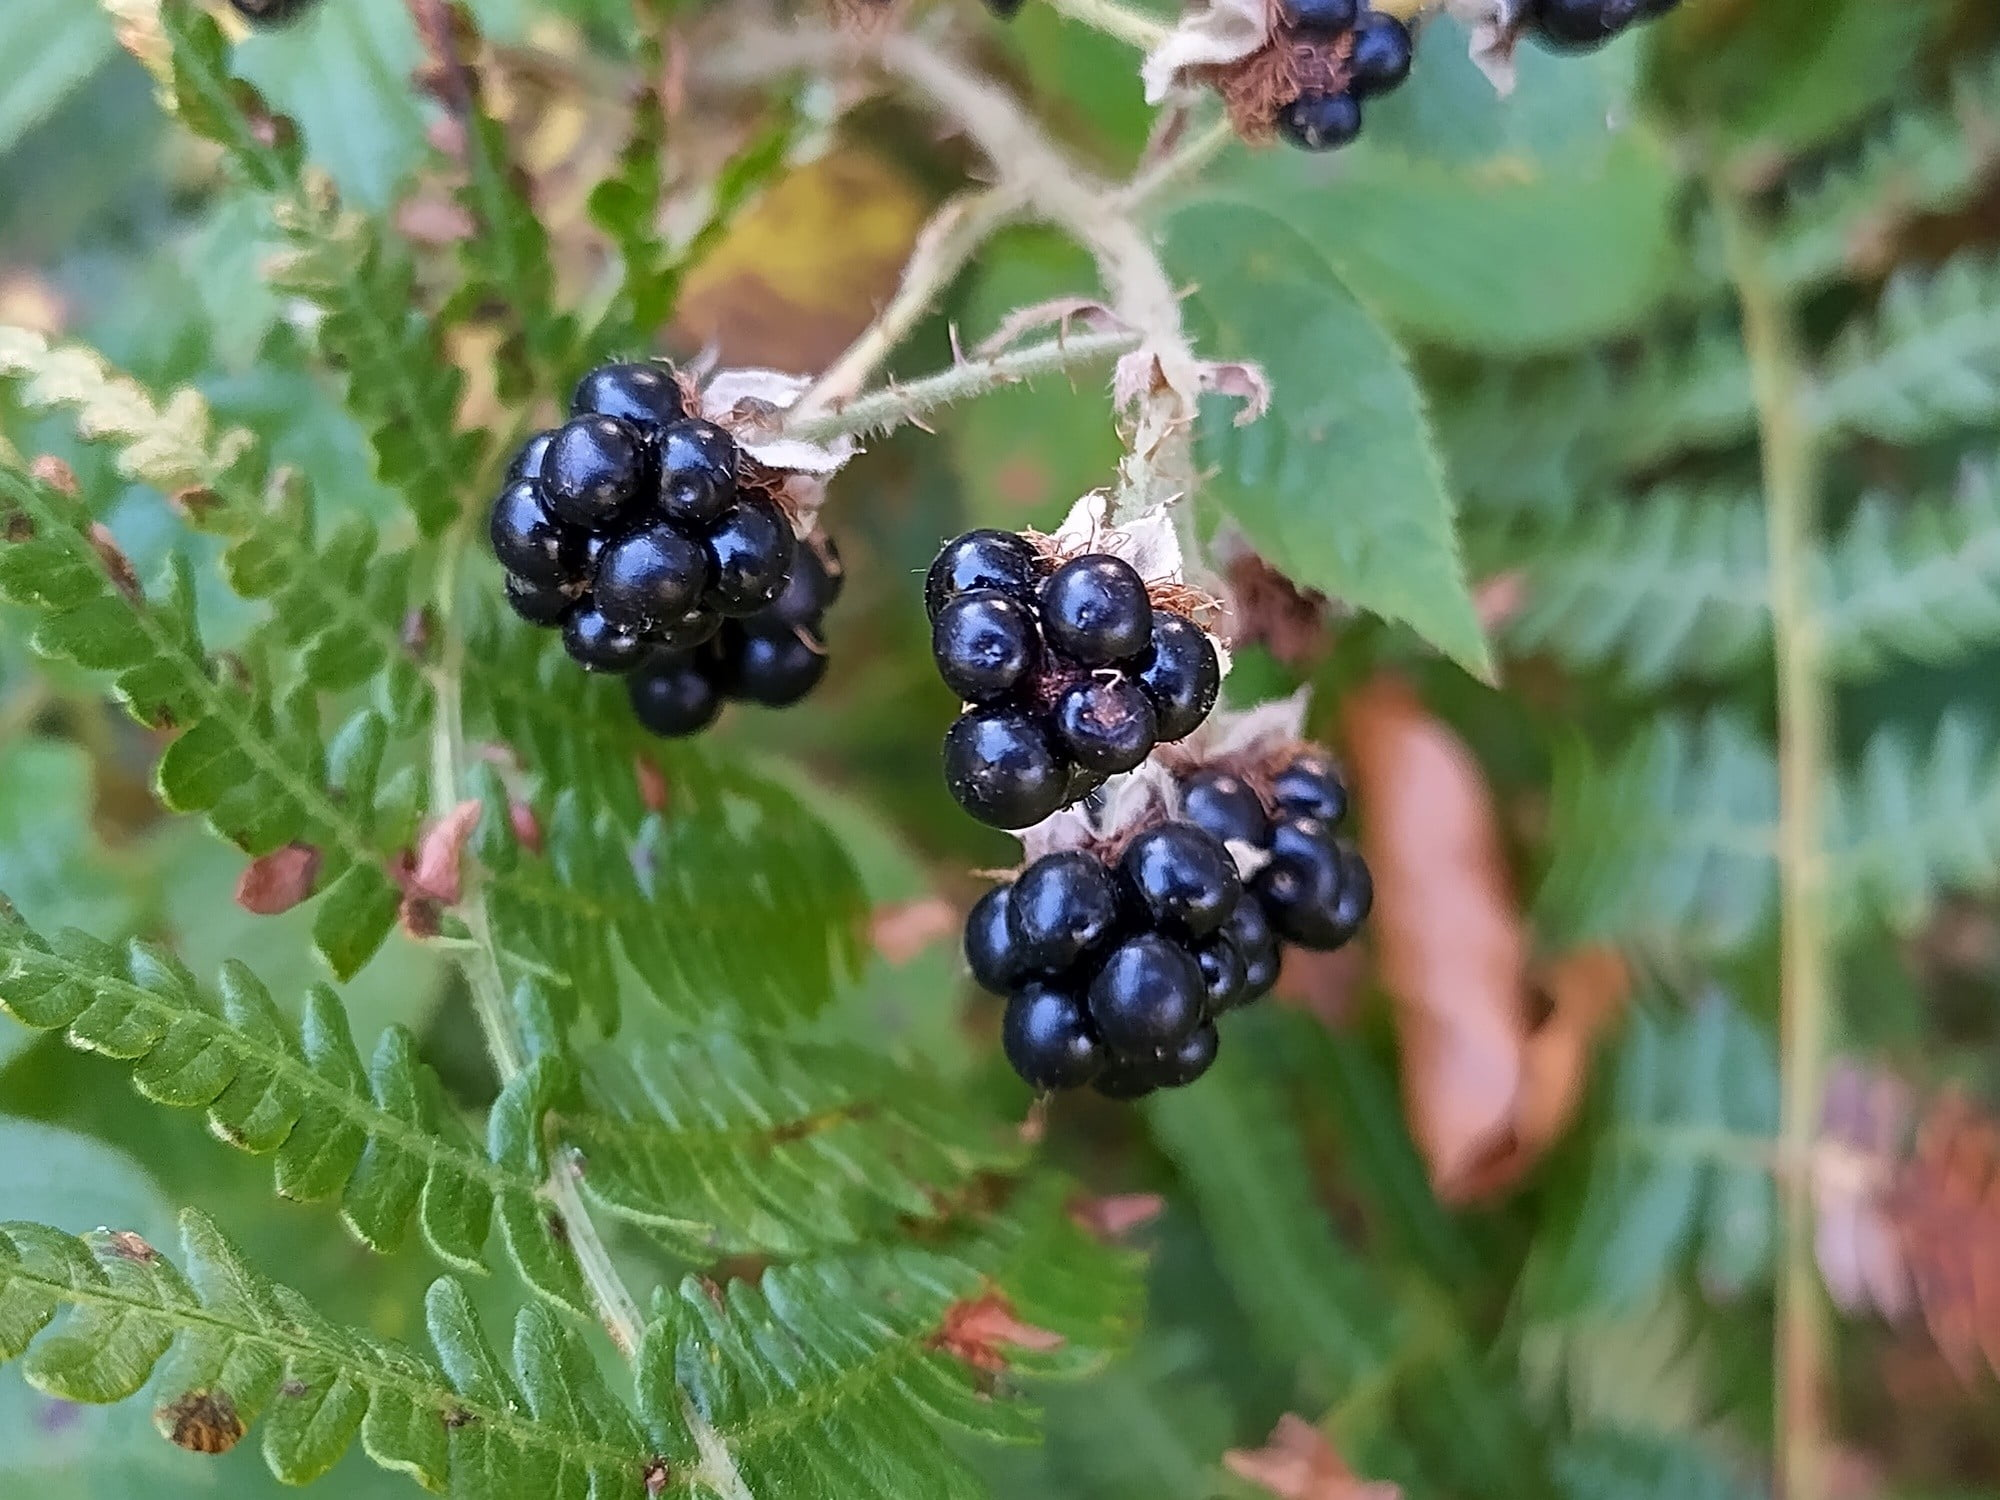 Photo of blackberries taken with the Nokia XR20.